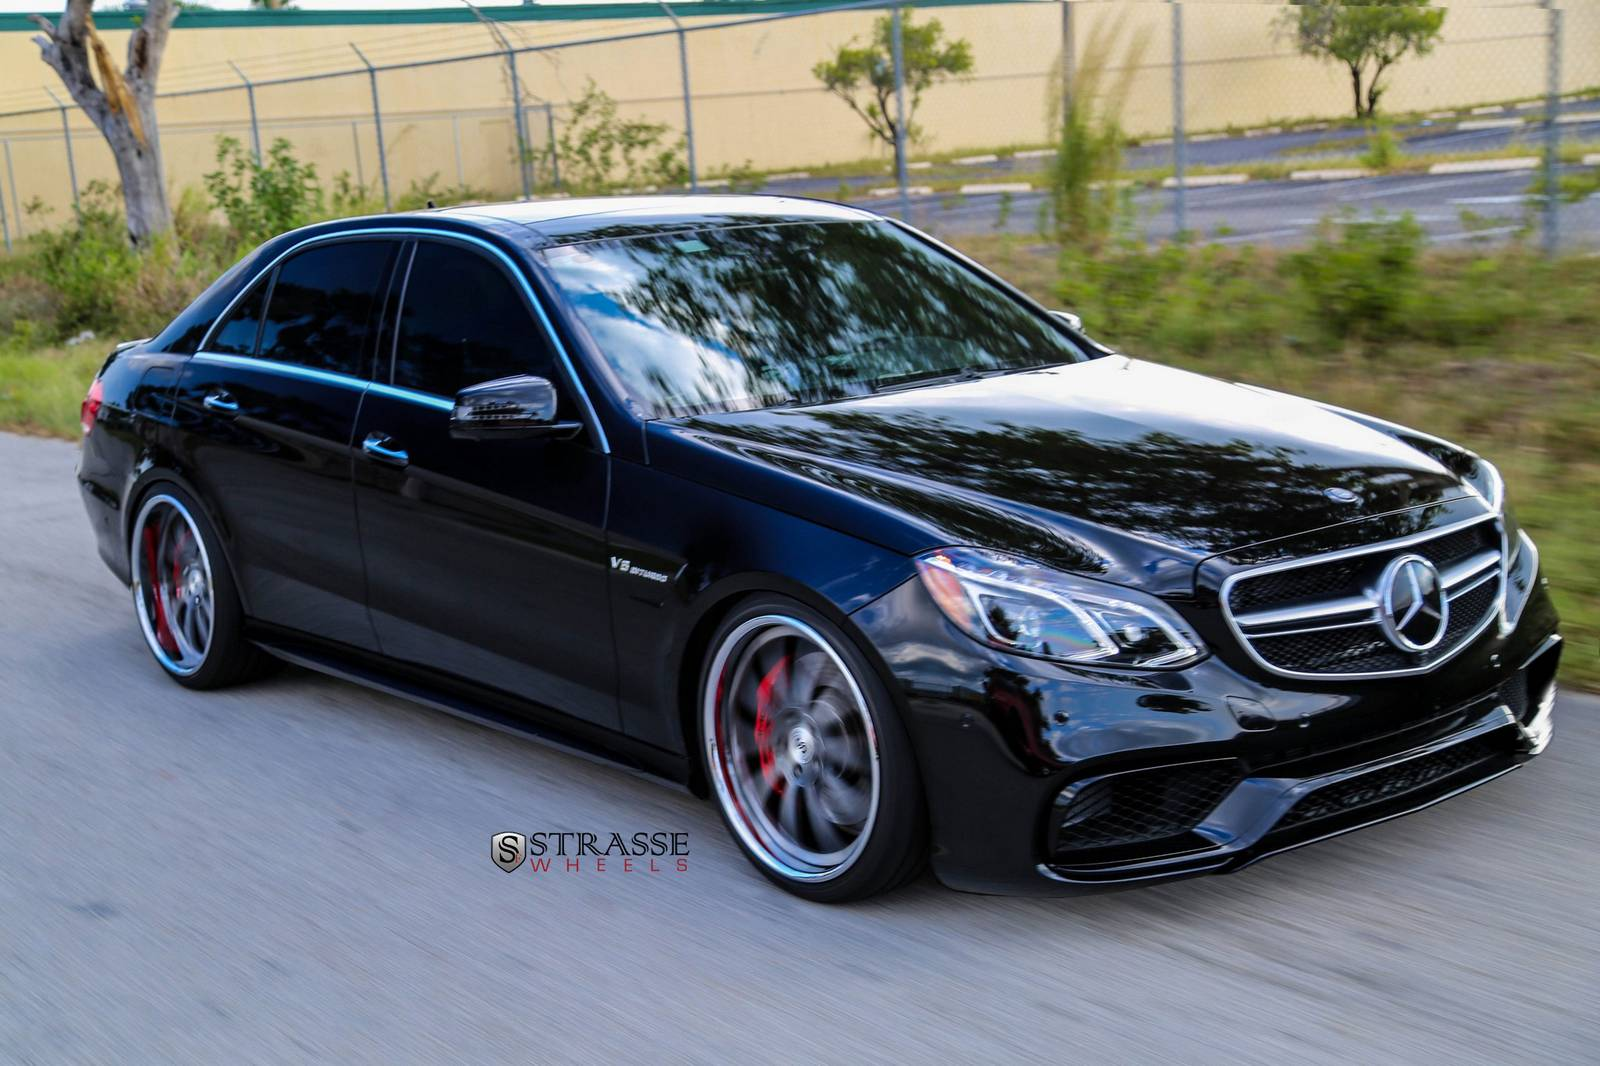 2014 mercedes benz e63 amg s by titanio automotive for Mercedes benz e 63 amg